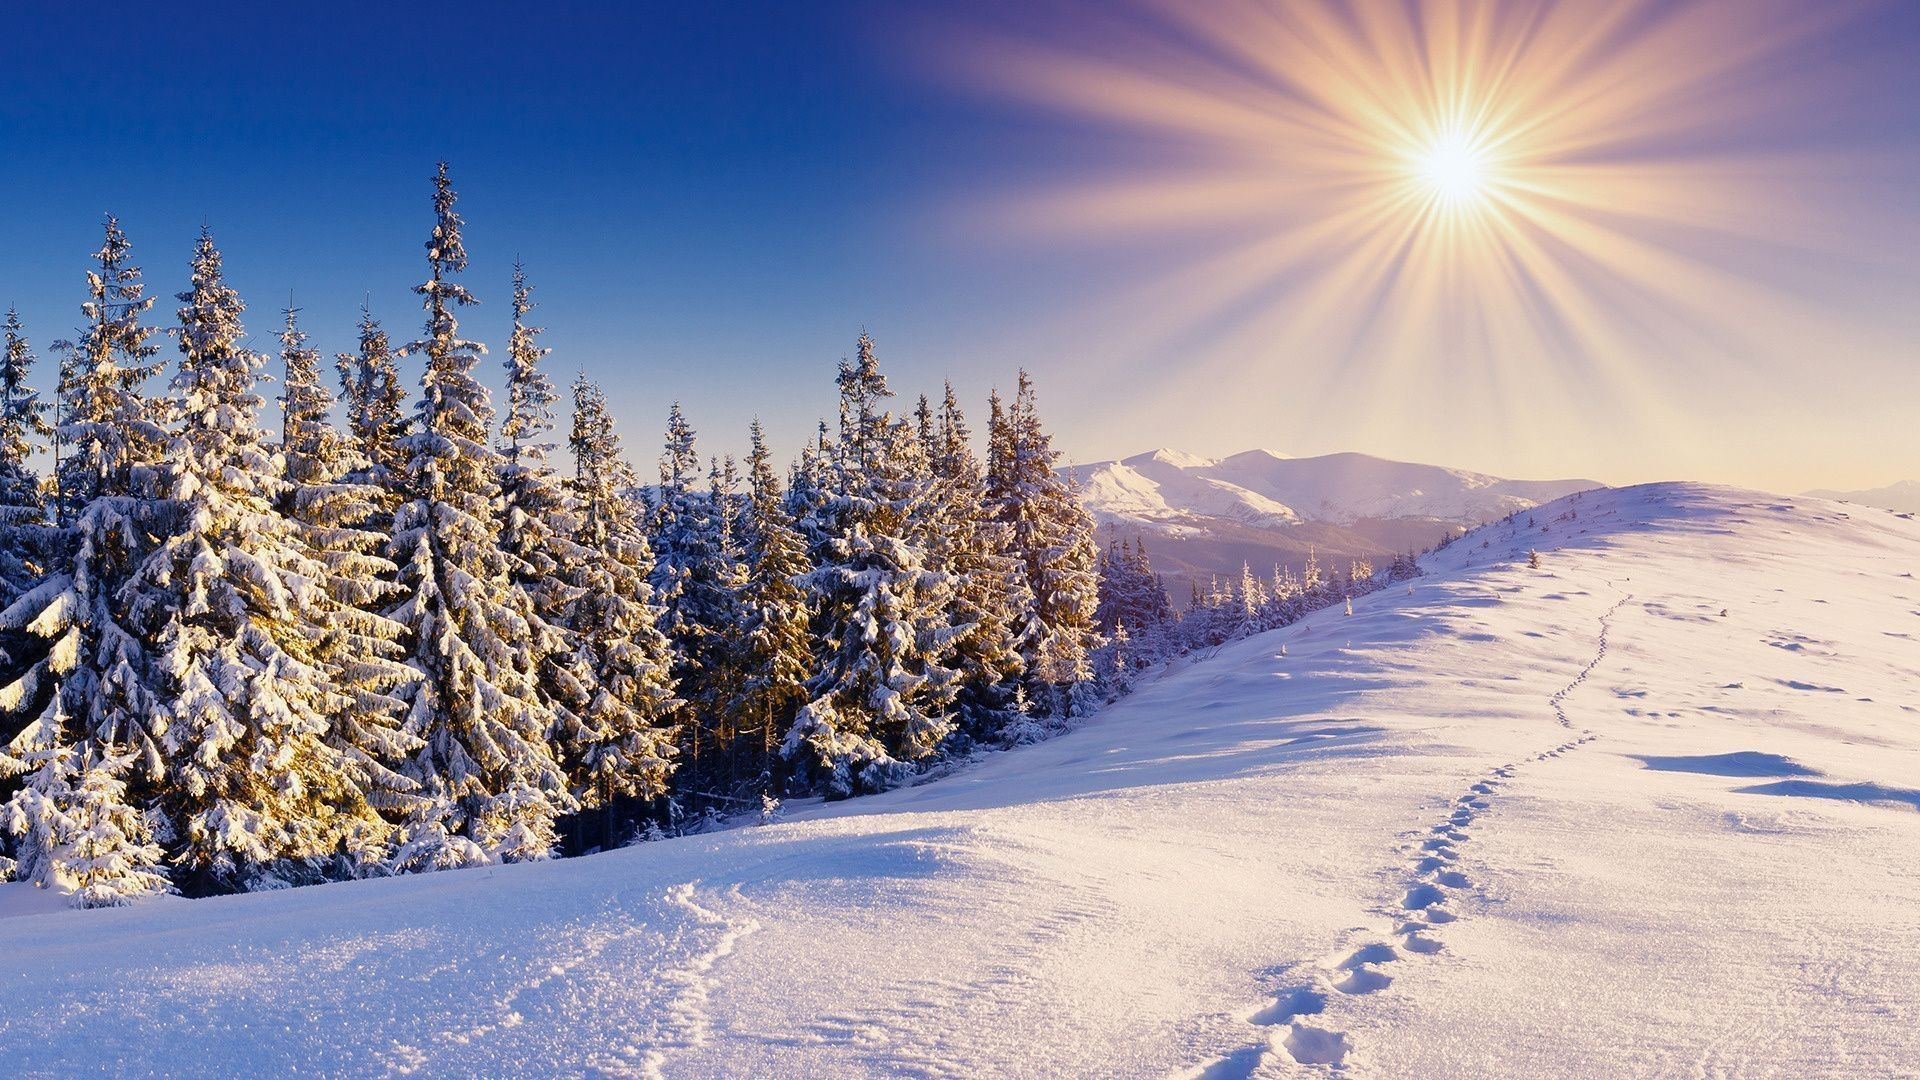 Mountain winter forest wallpapers and images – wallpapers .